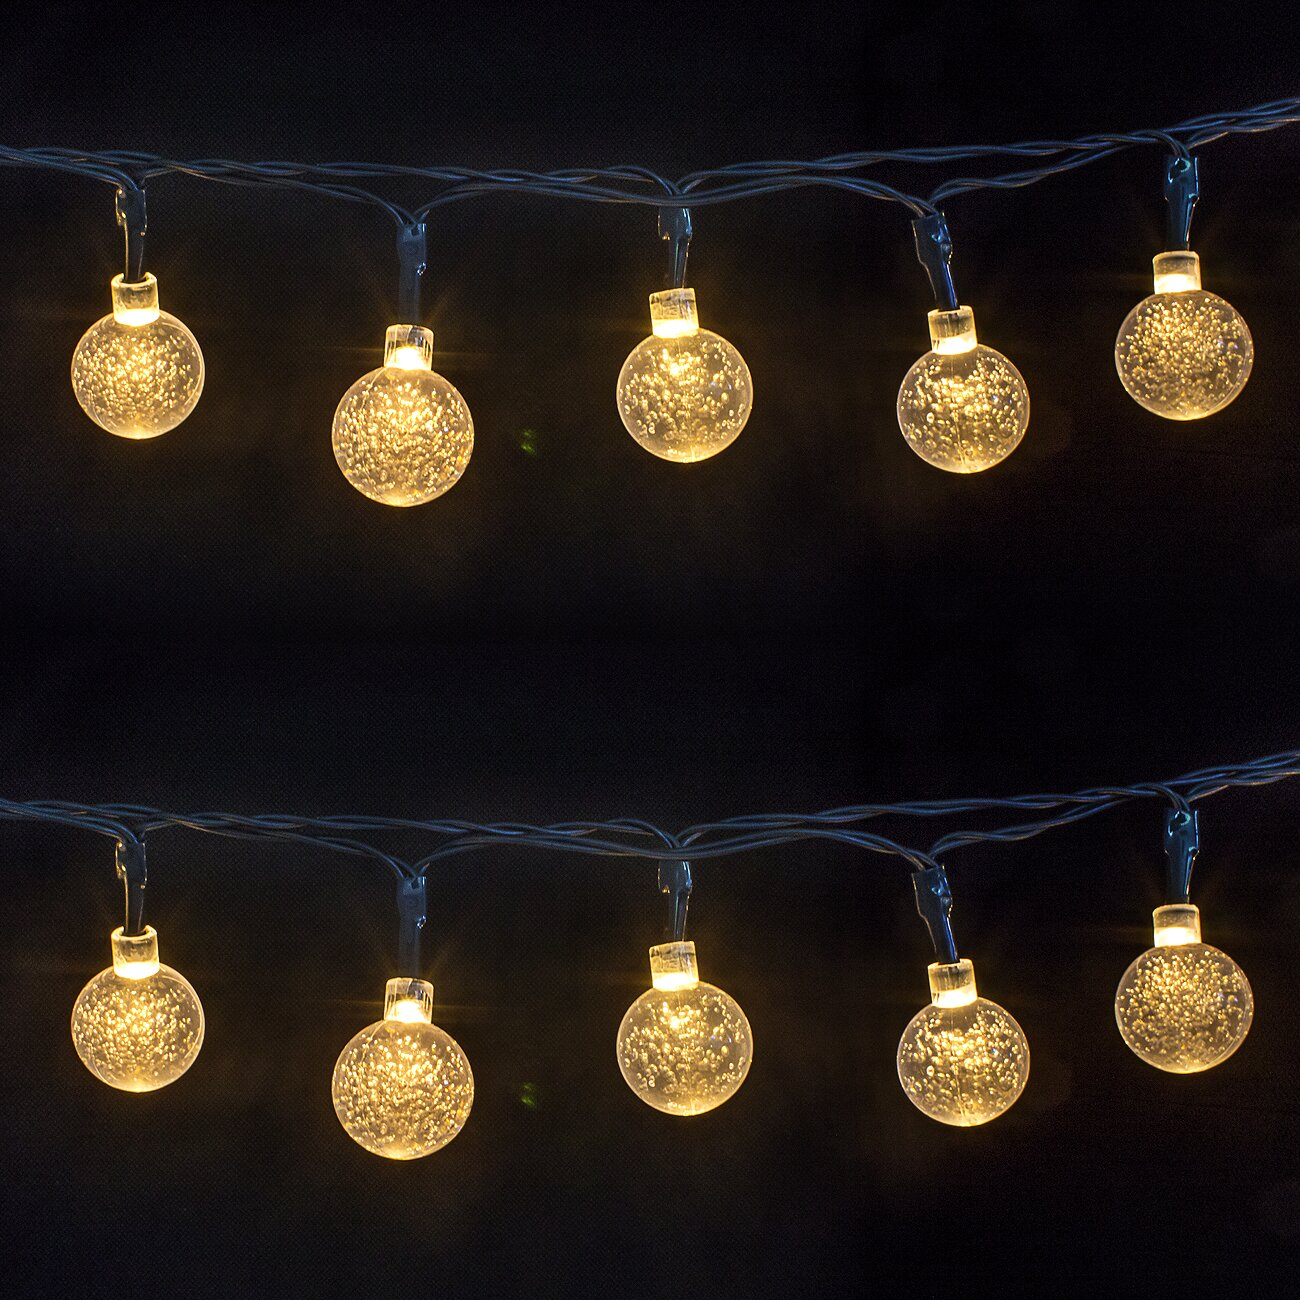 String Lights In Office: LED Concepts 30-Light 16 Ft. Globe String Lights & Reviews